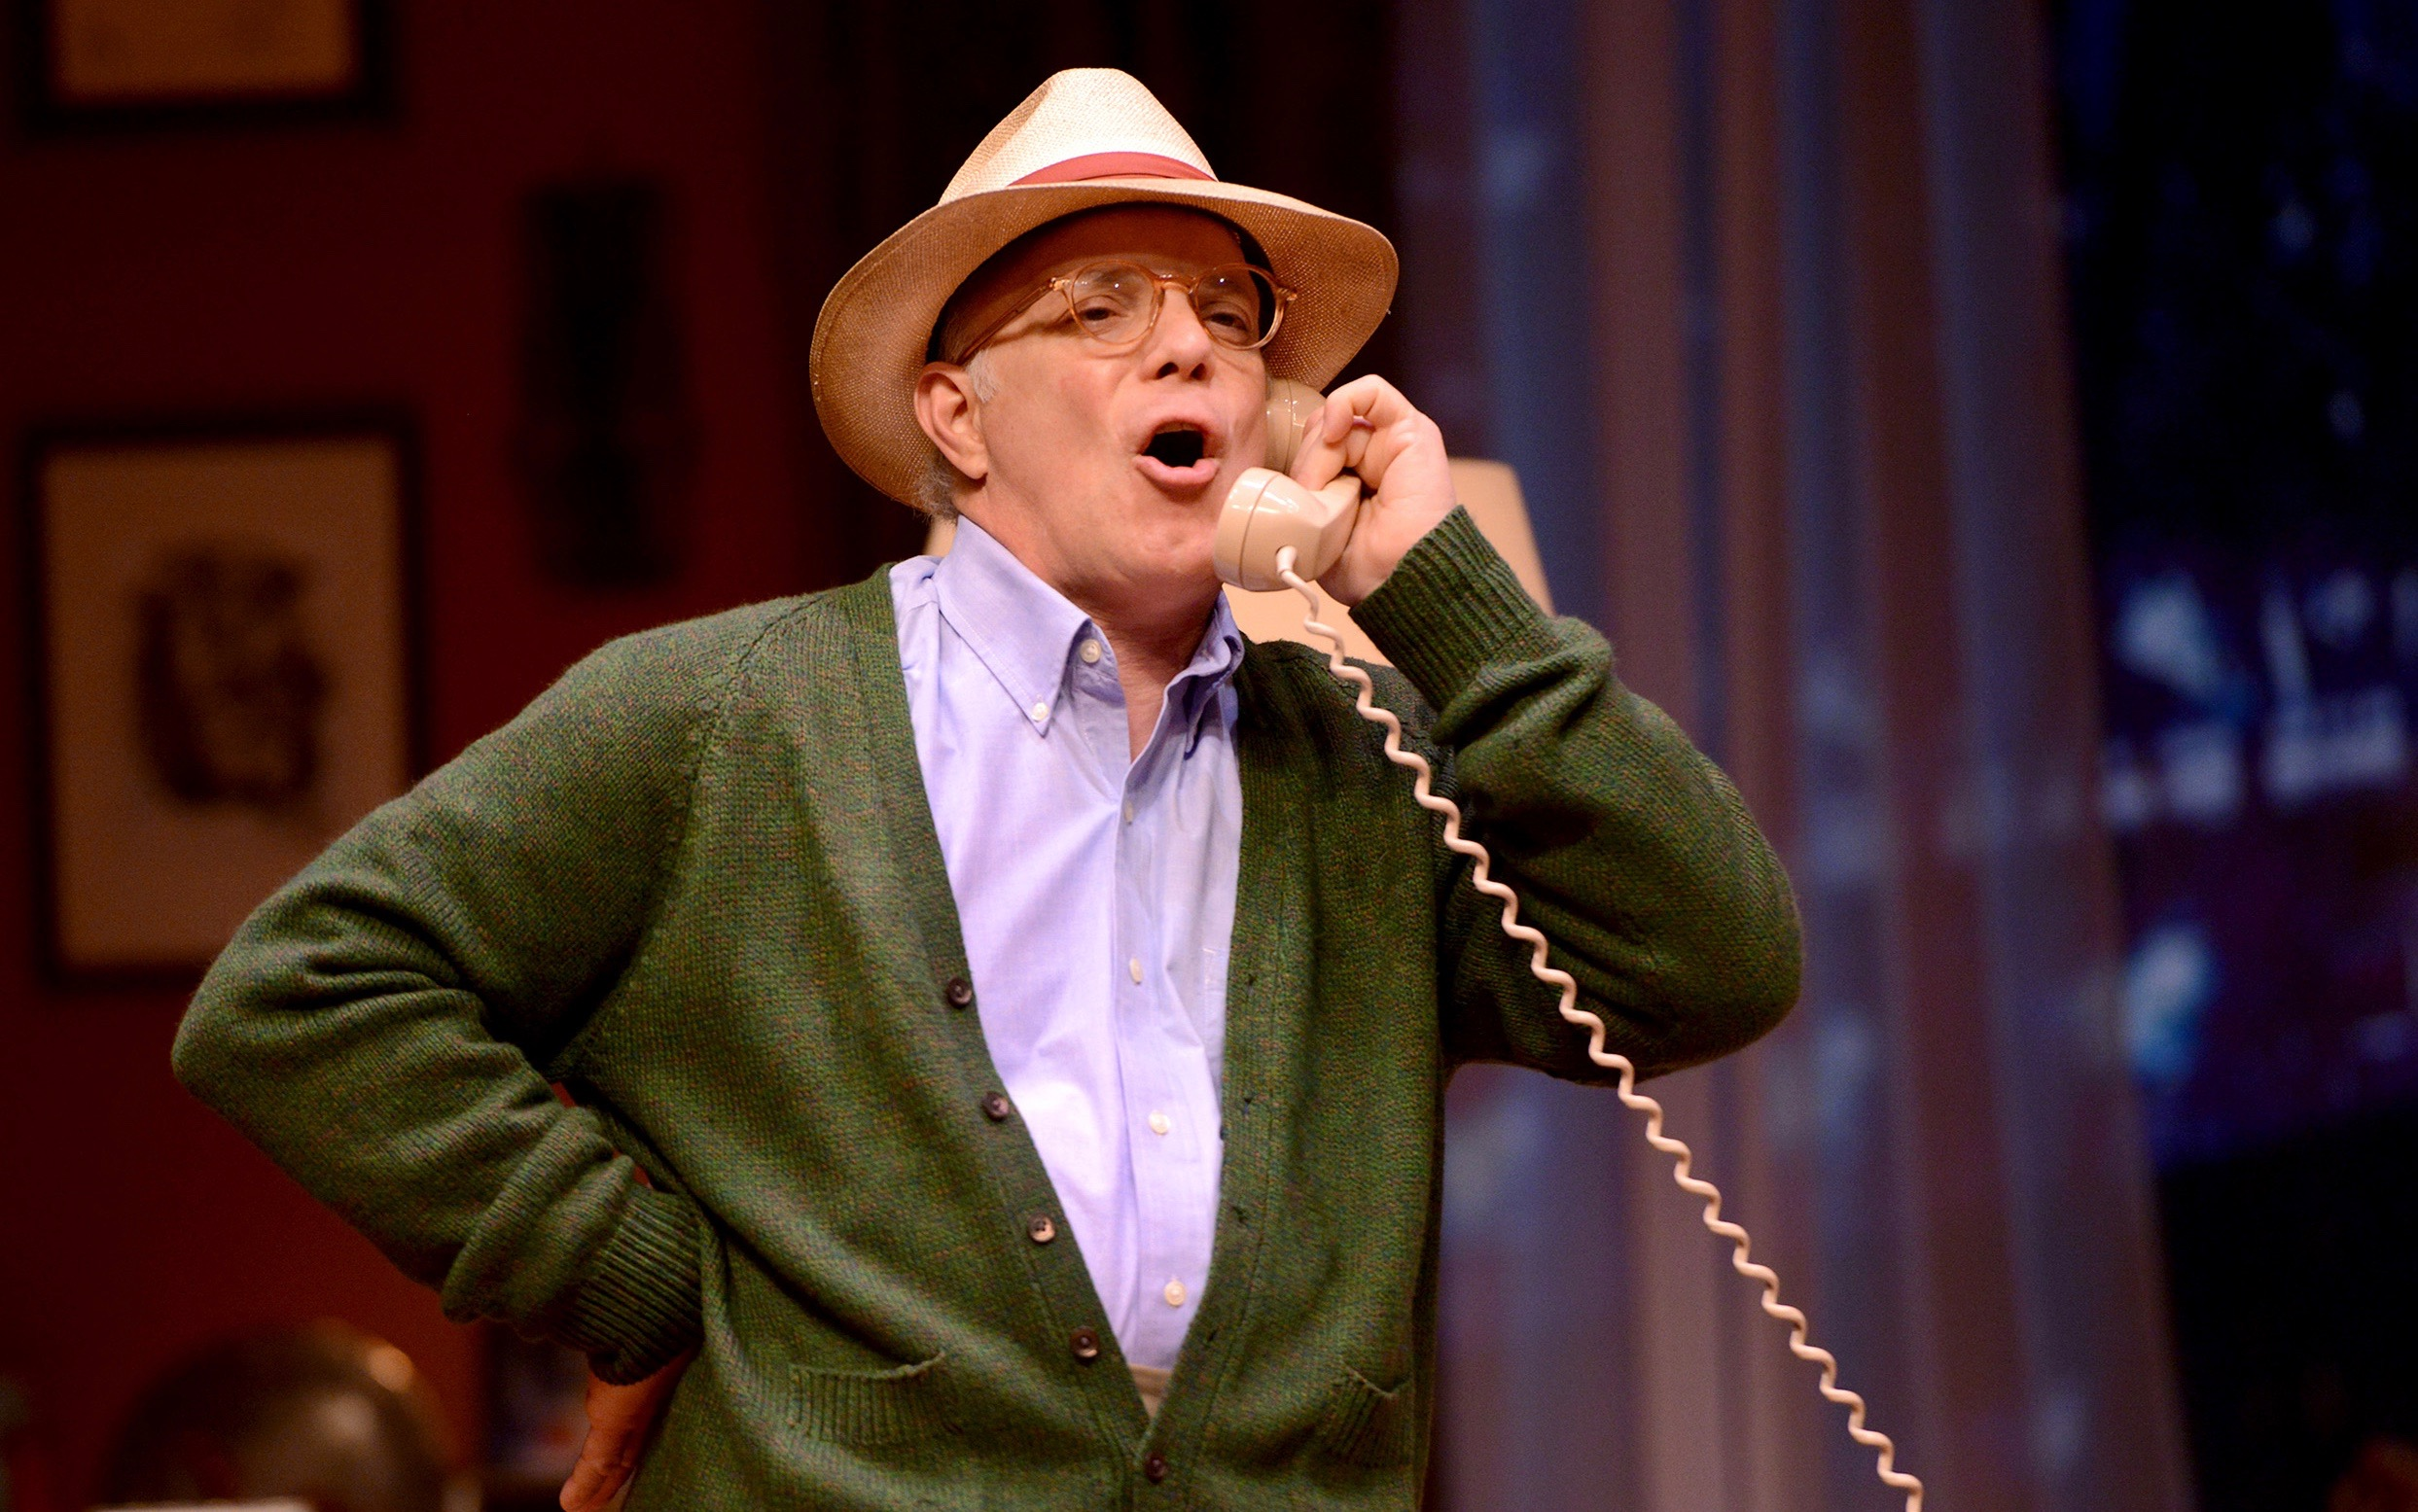 """He's not ordering pizza; he's going bananas. Eddie Korbich plays an off-the-deep-end Truman Capote in """"TRU"""" at The Public."""